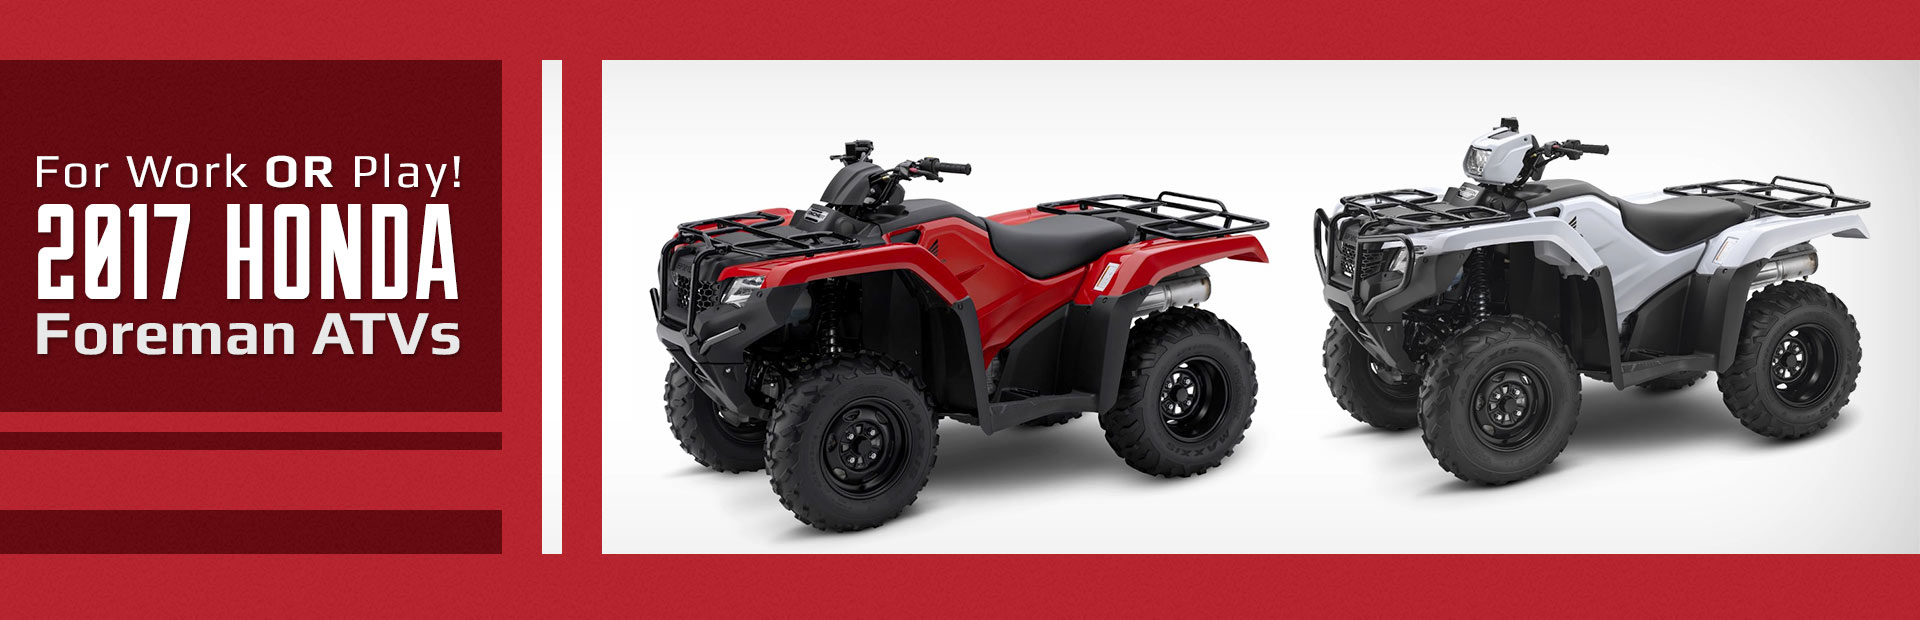 2017 Honda Foreman ATVs: Click here to view the lineup.